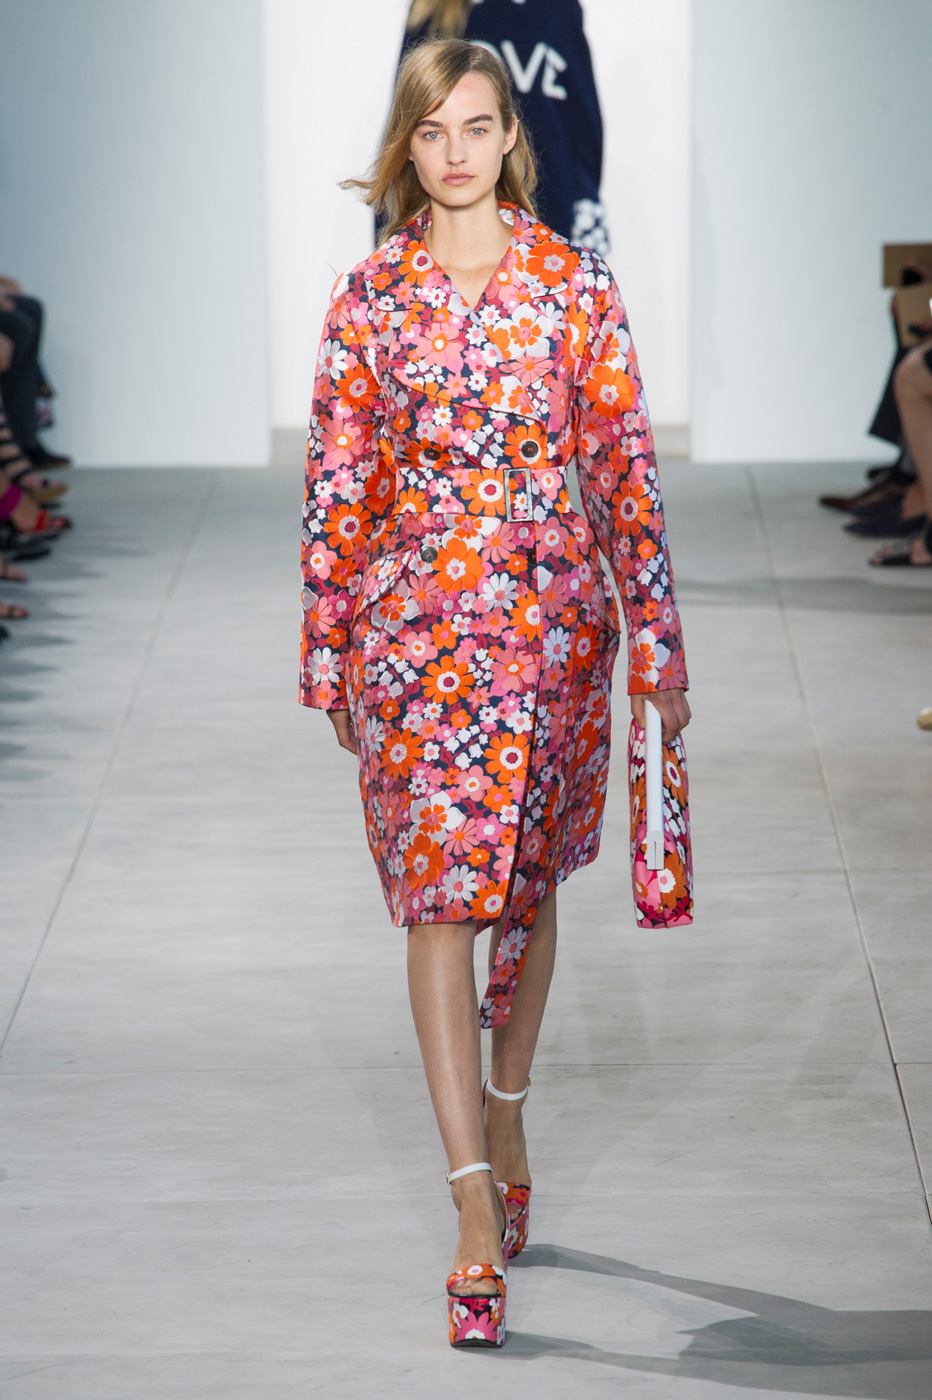 Michael Kors Hits Floral Notes for Spring/Summer 2017